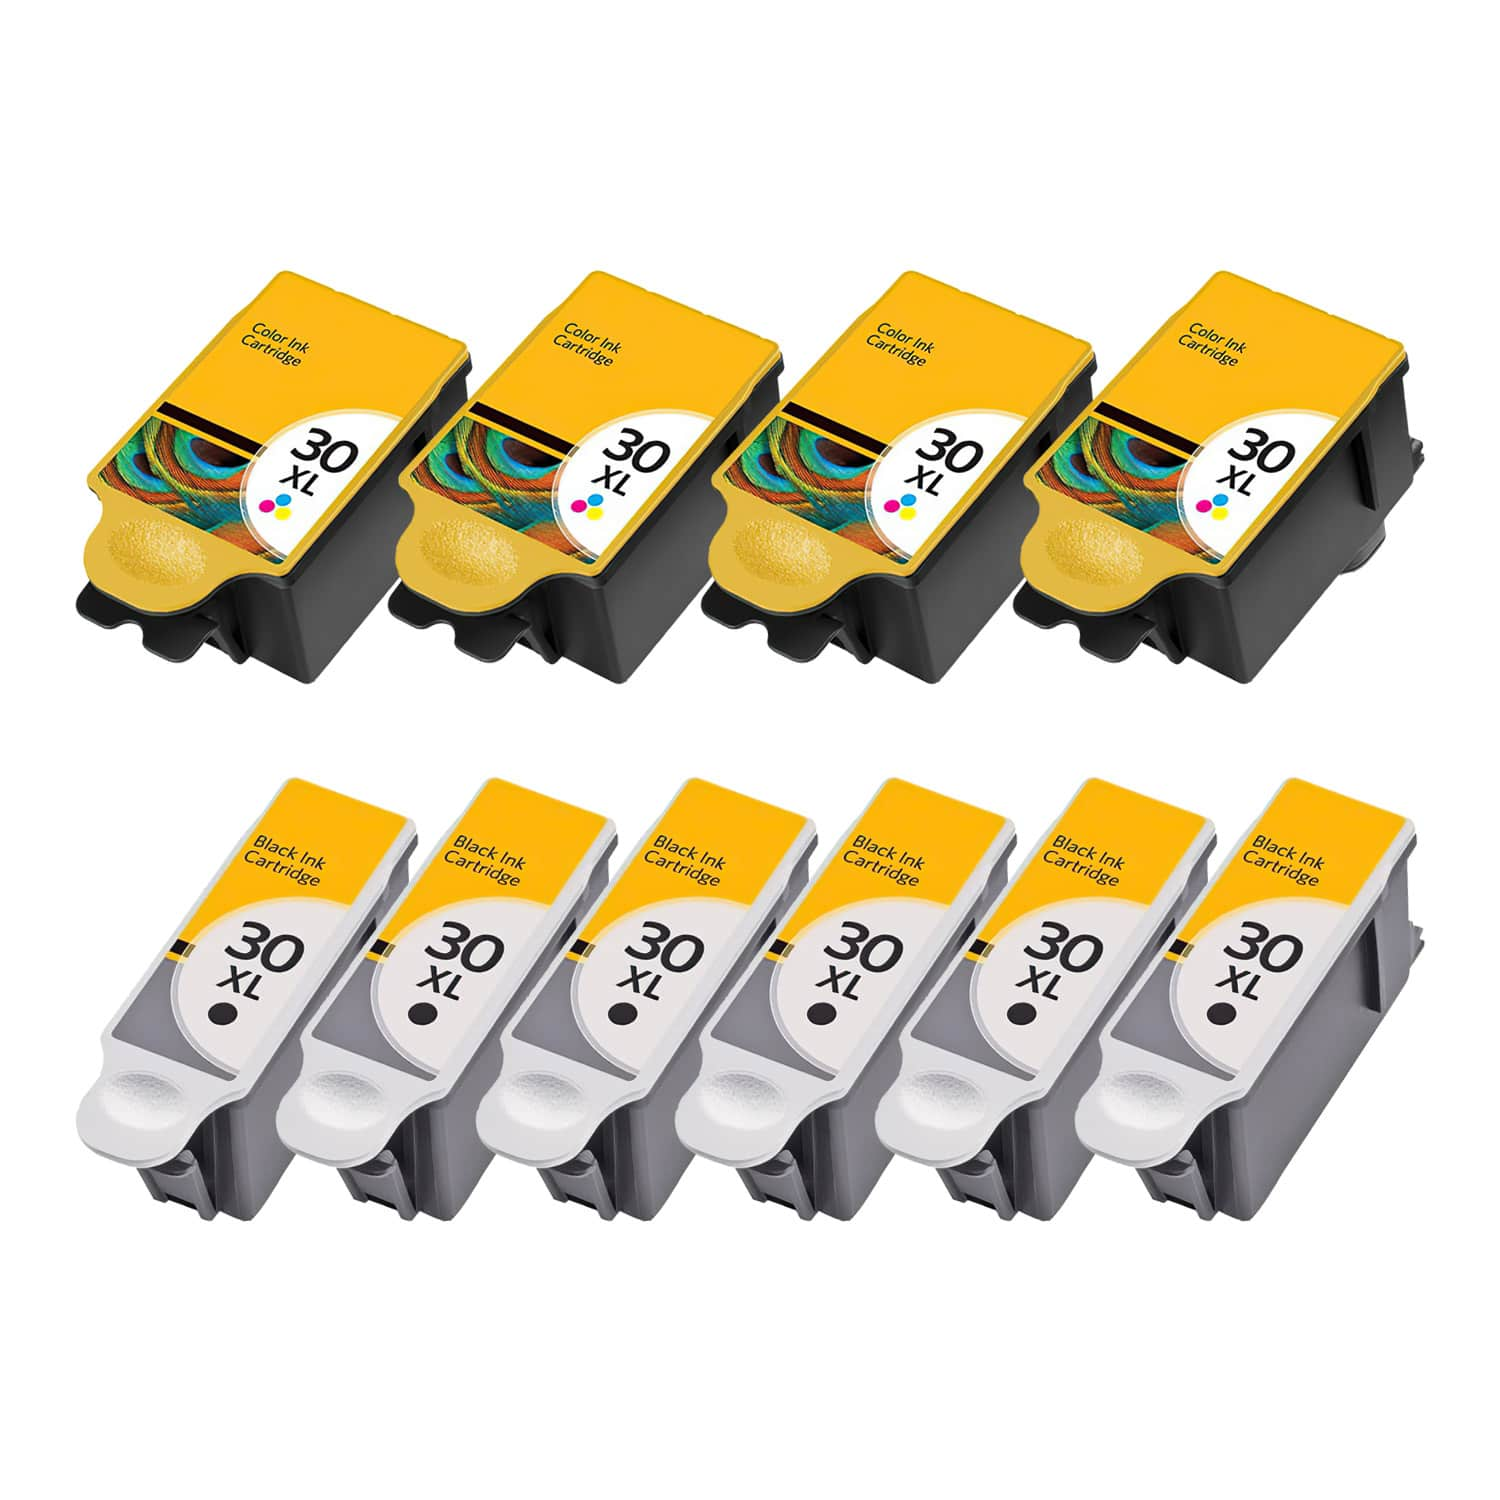 Compatible Kodak 30XL Inkjet High Capacity Pack - 10 Cartridges